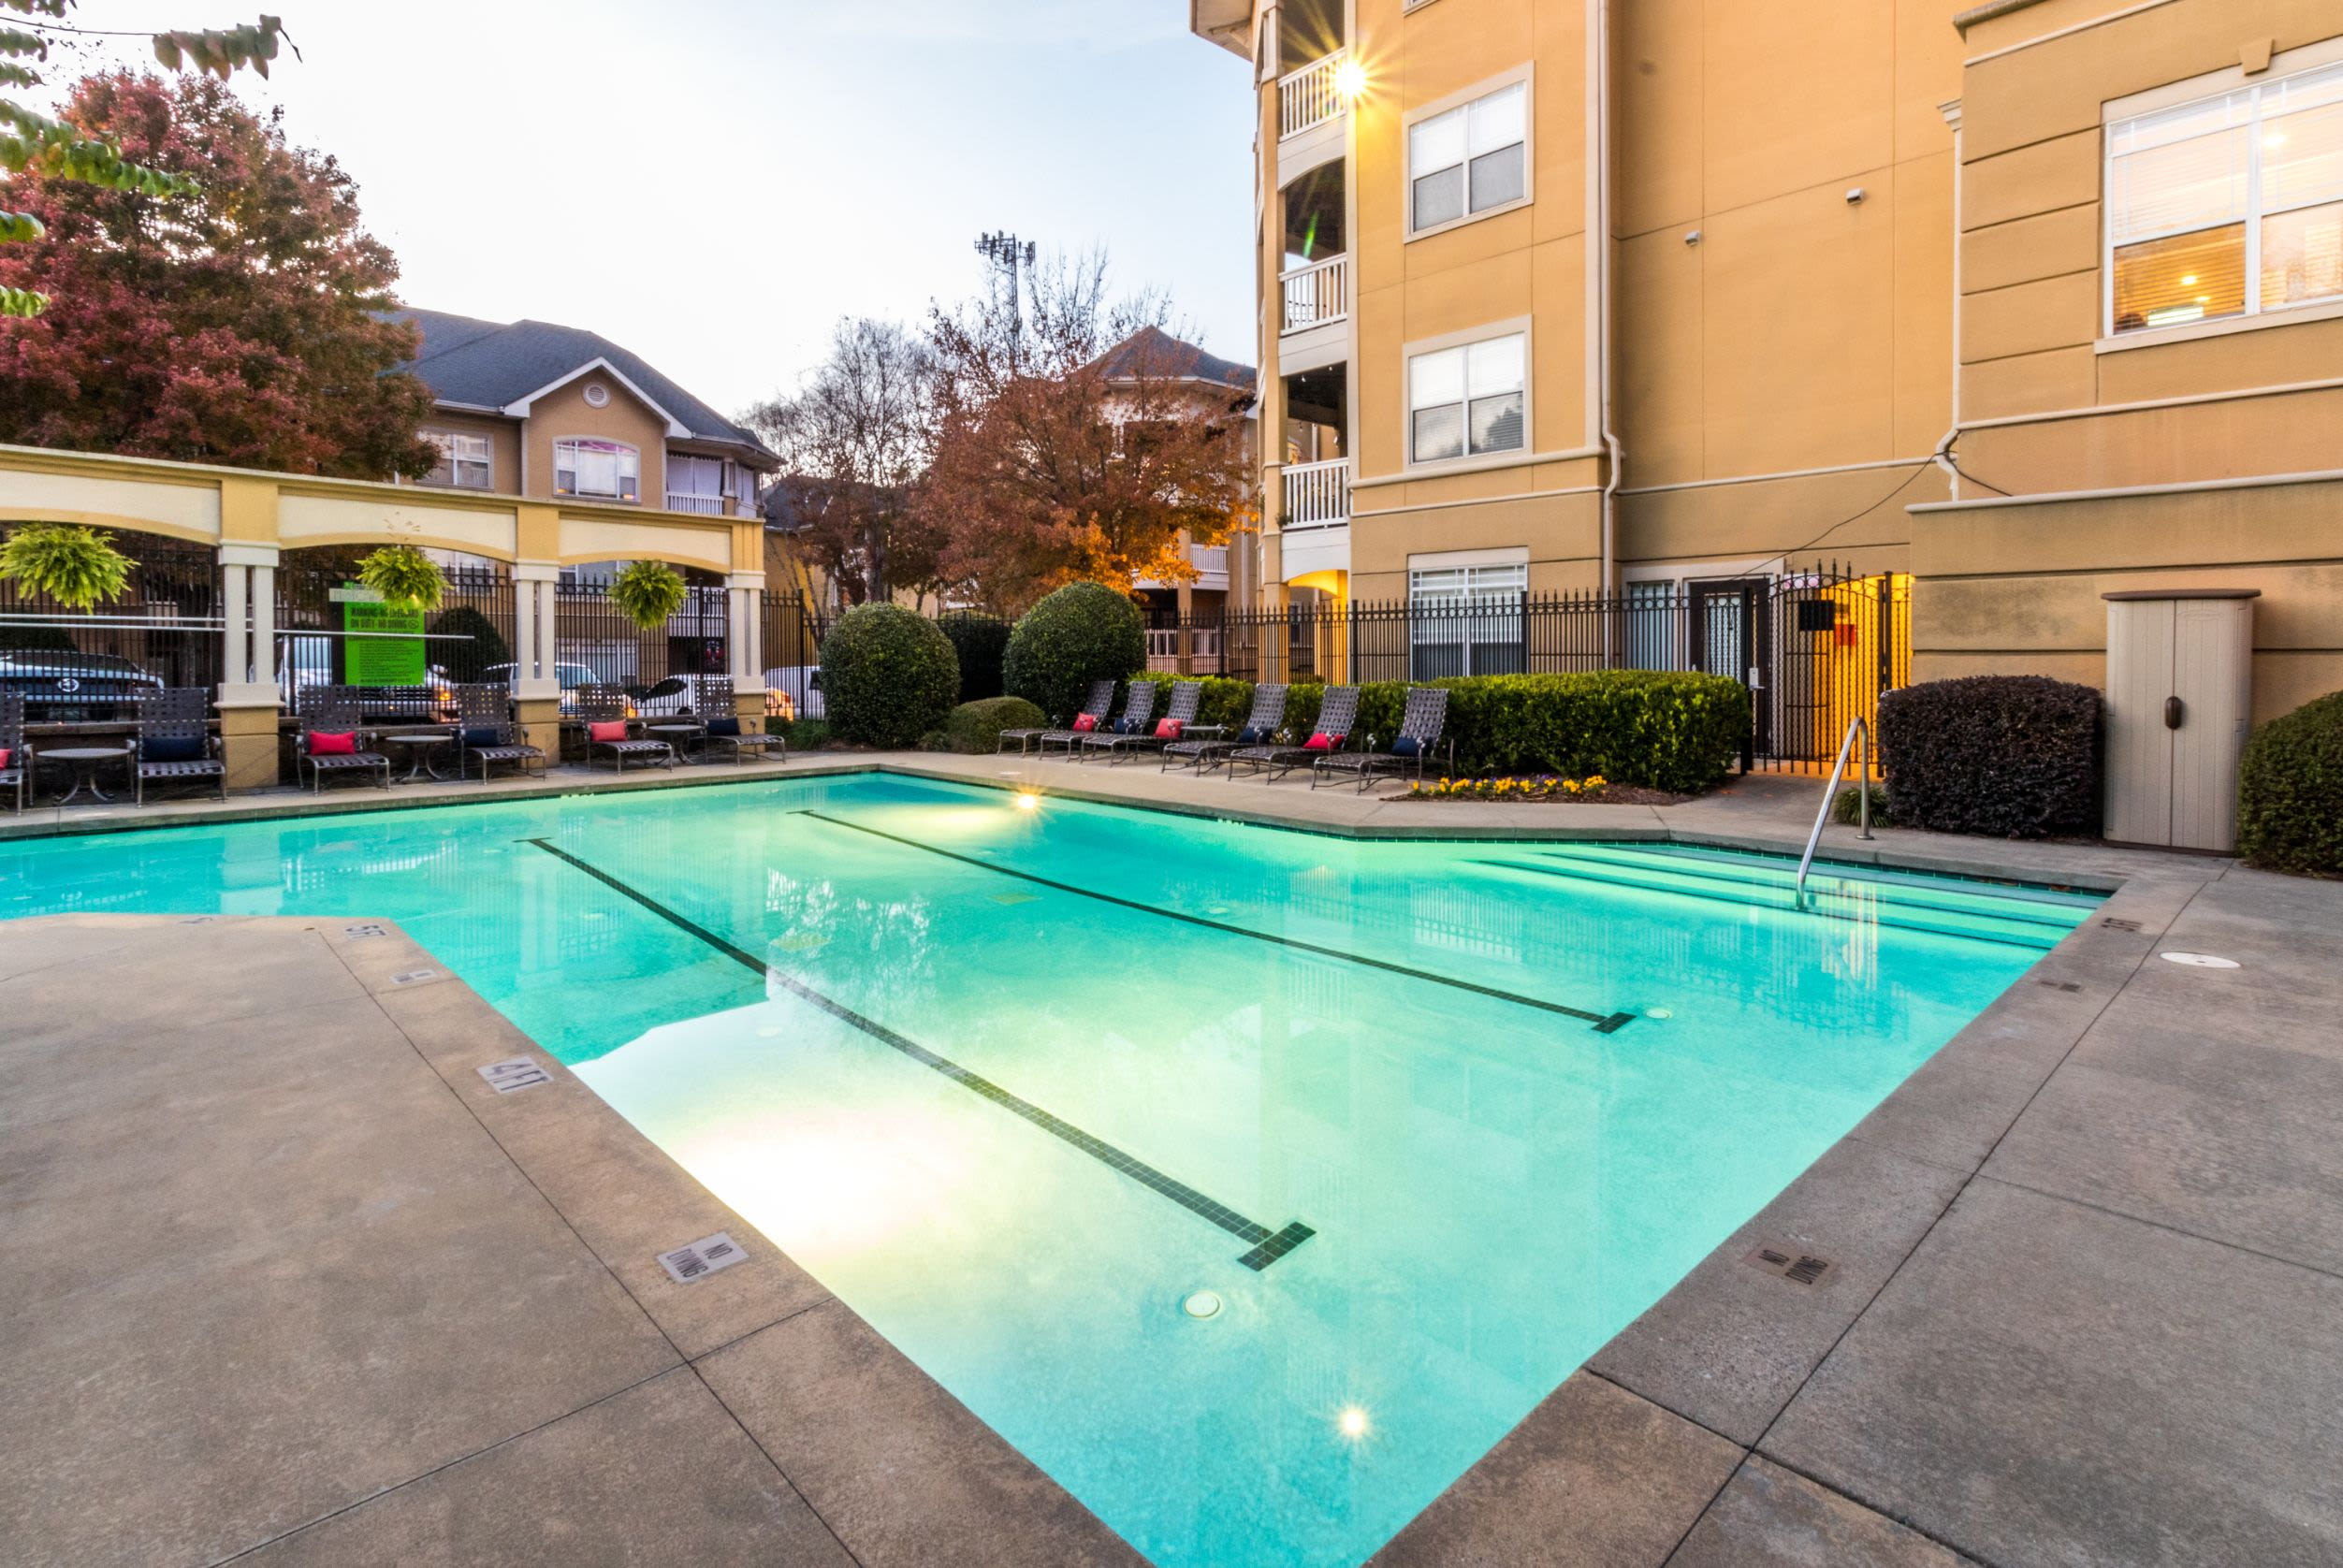 Pool with lines for lap swimming at Marquis Midtown West in Atlanta, Georgia